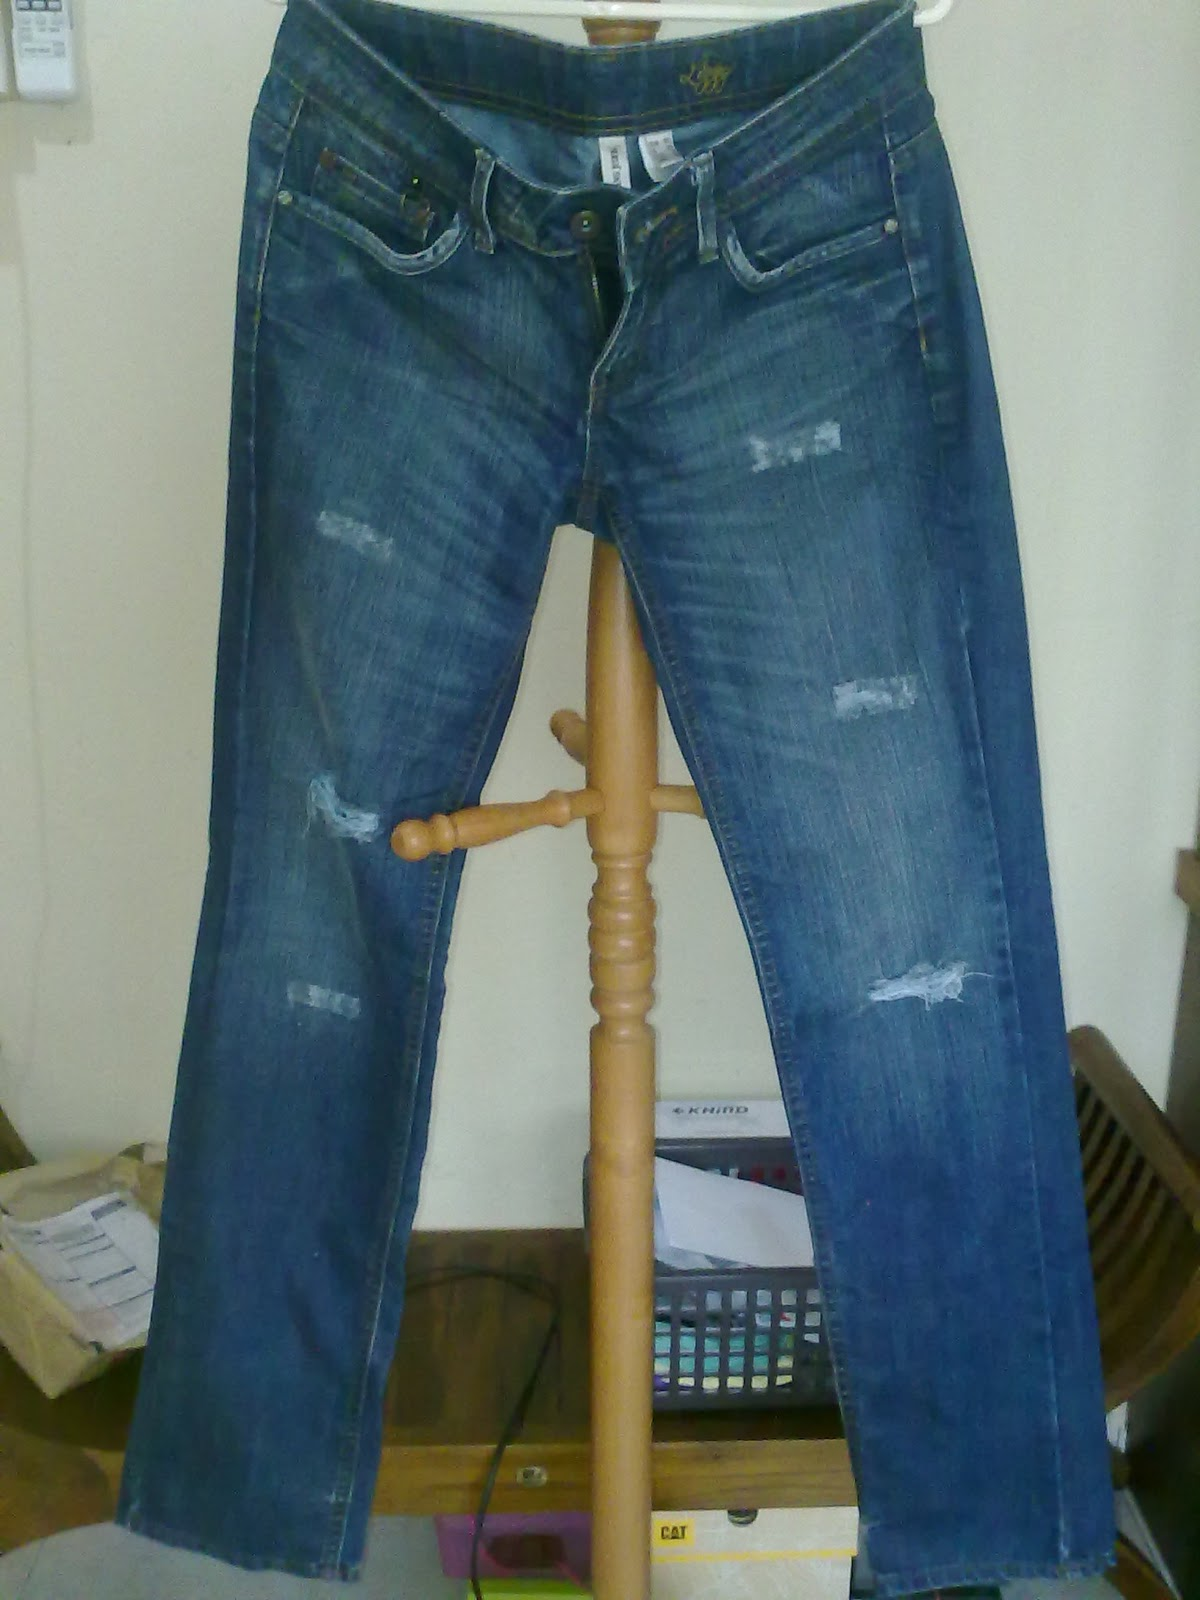 Find new and preloved mng jeans items at up to 70% off retail prices. Poshmark makes shopping fun, affordable & easy!